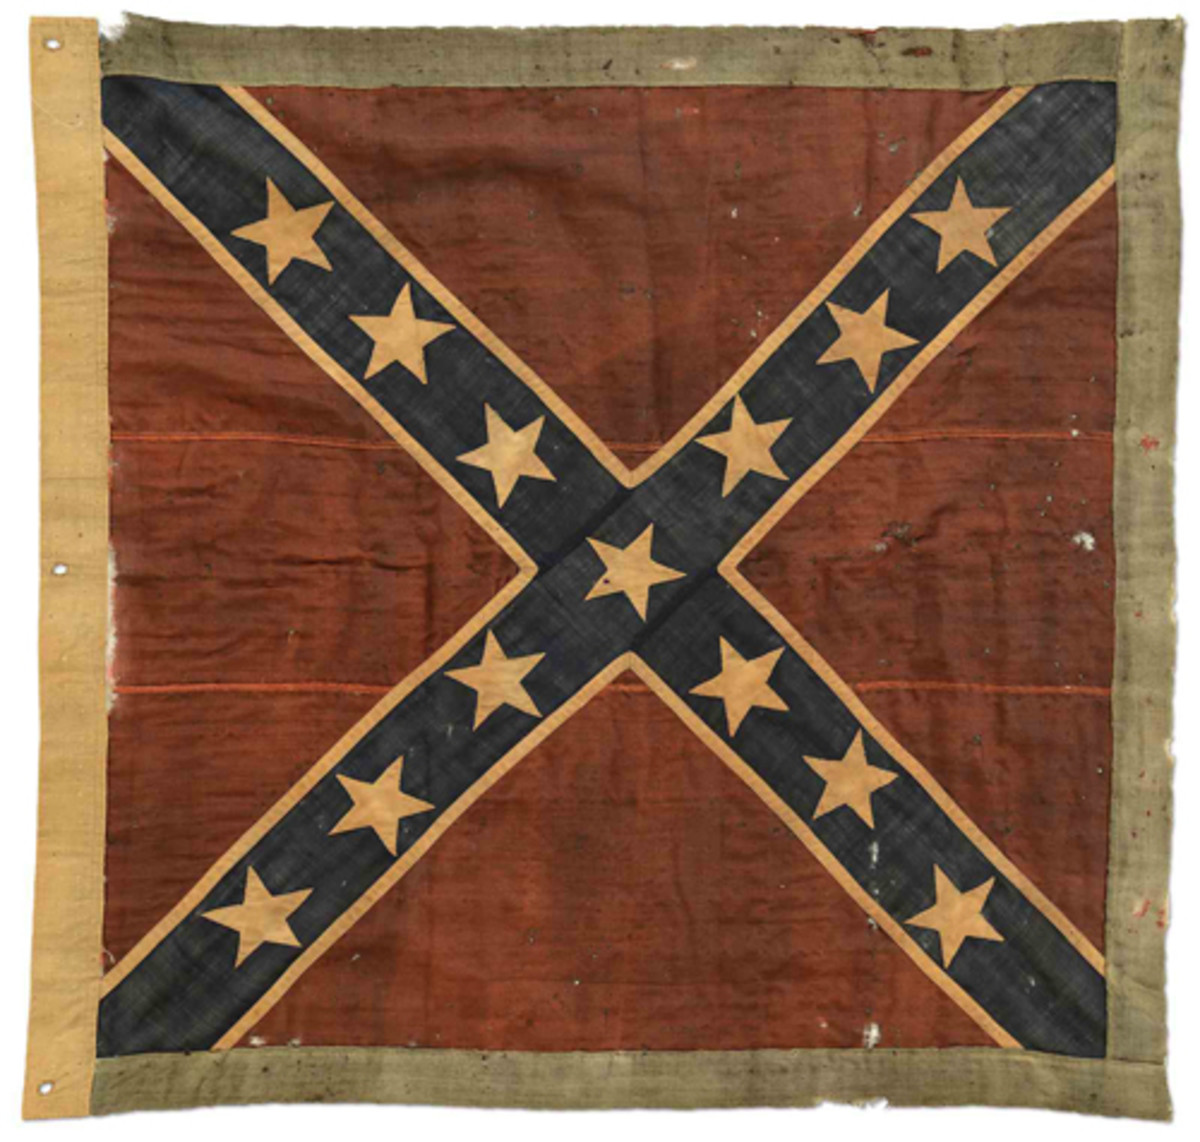 Lot #3354, the unique Army of Northern Virginia Battle Flag of Confederate Marines under Robert E. Lee. This great rarity was formerly in the Mariners Museum in Wilmington, NC. It was captured at the Battle of Sailor's Creek. Estimate: $125,000-250,000.